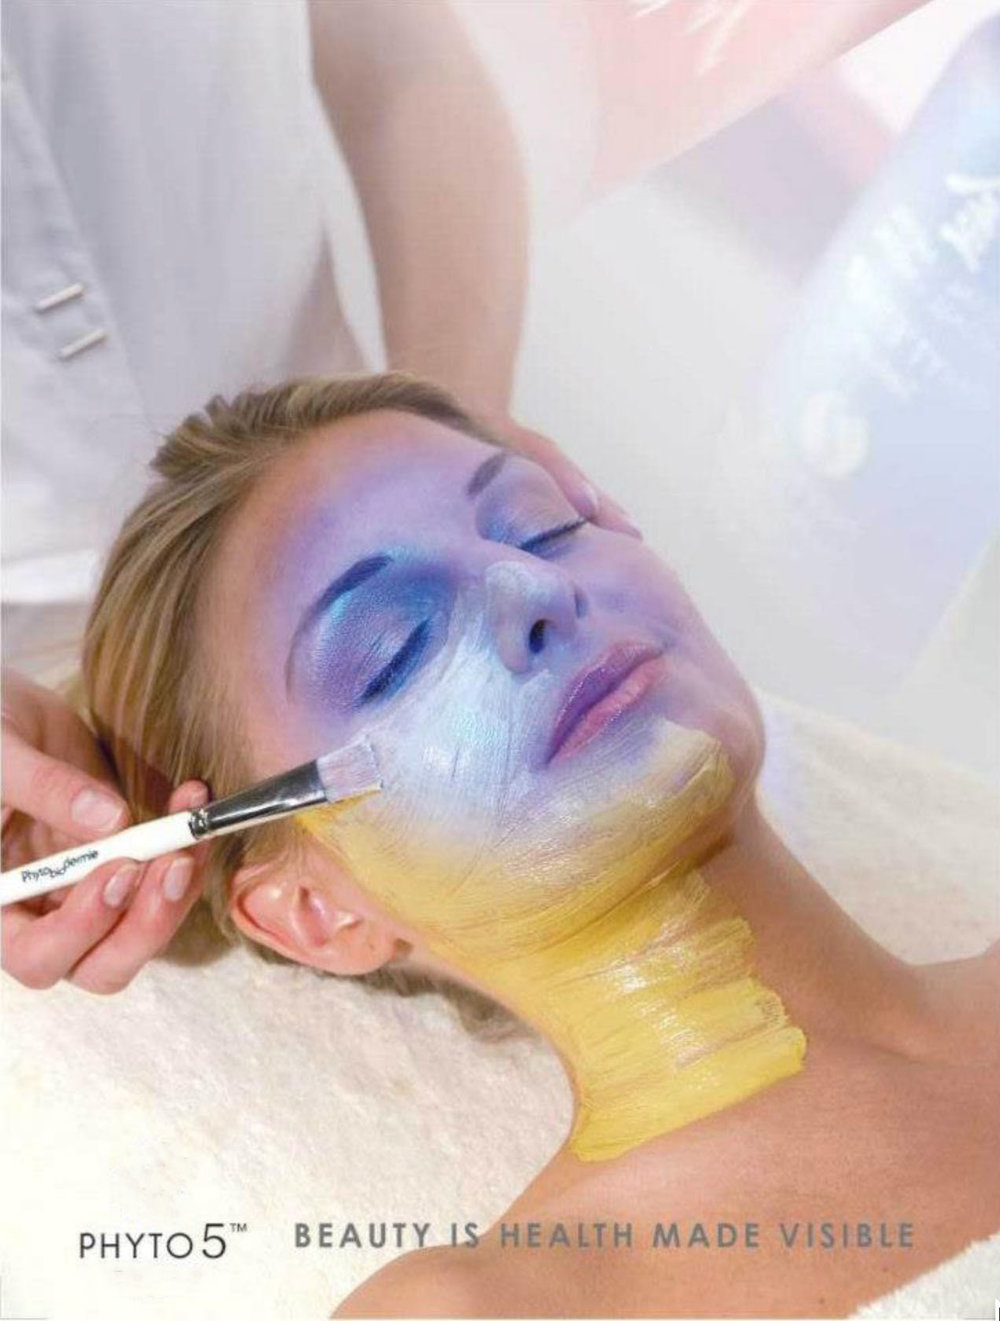 The PHYTO5 Wellness Facial